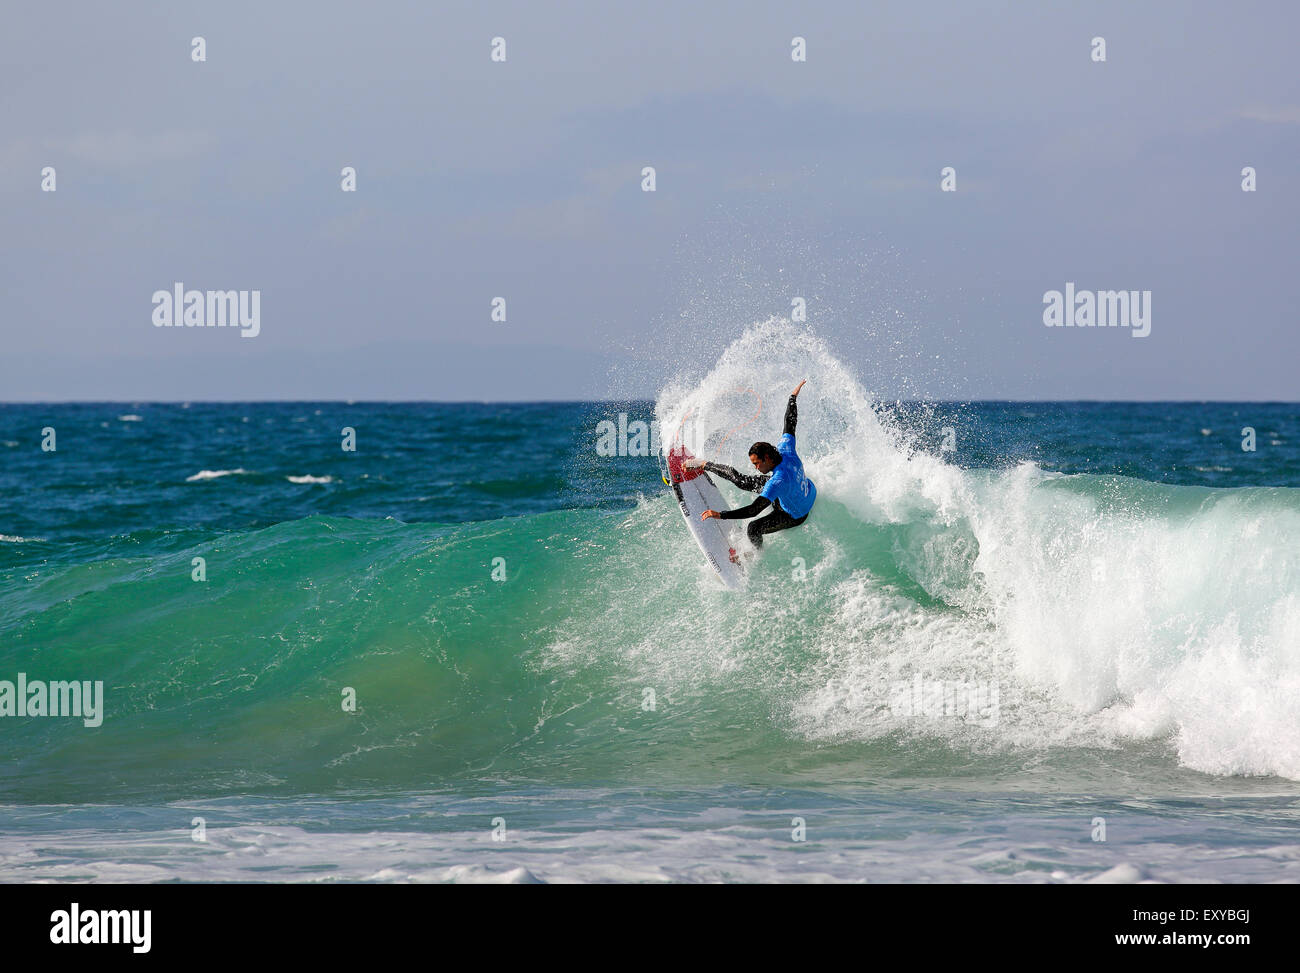 South African professional surfer Jordy Smith in action at the 2015 J-Bay Open surfing event in Jeffreys Bay, South - Stock Image